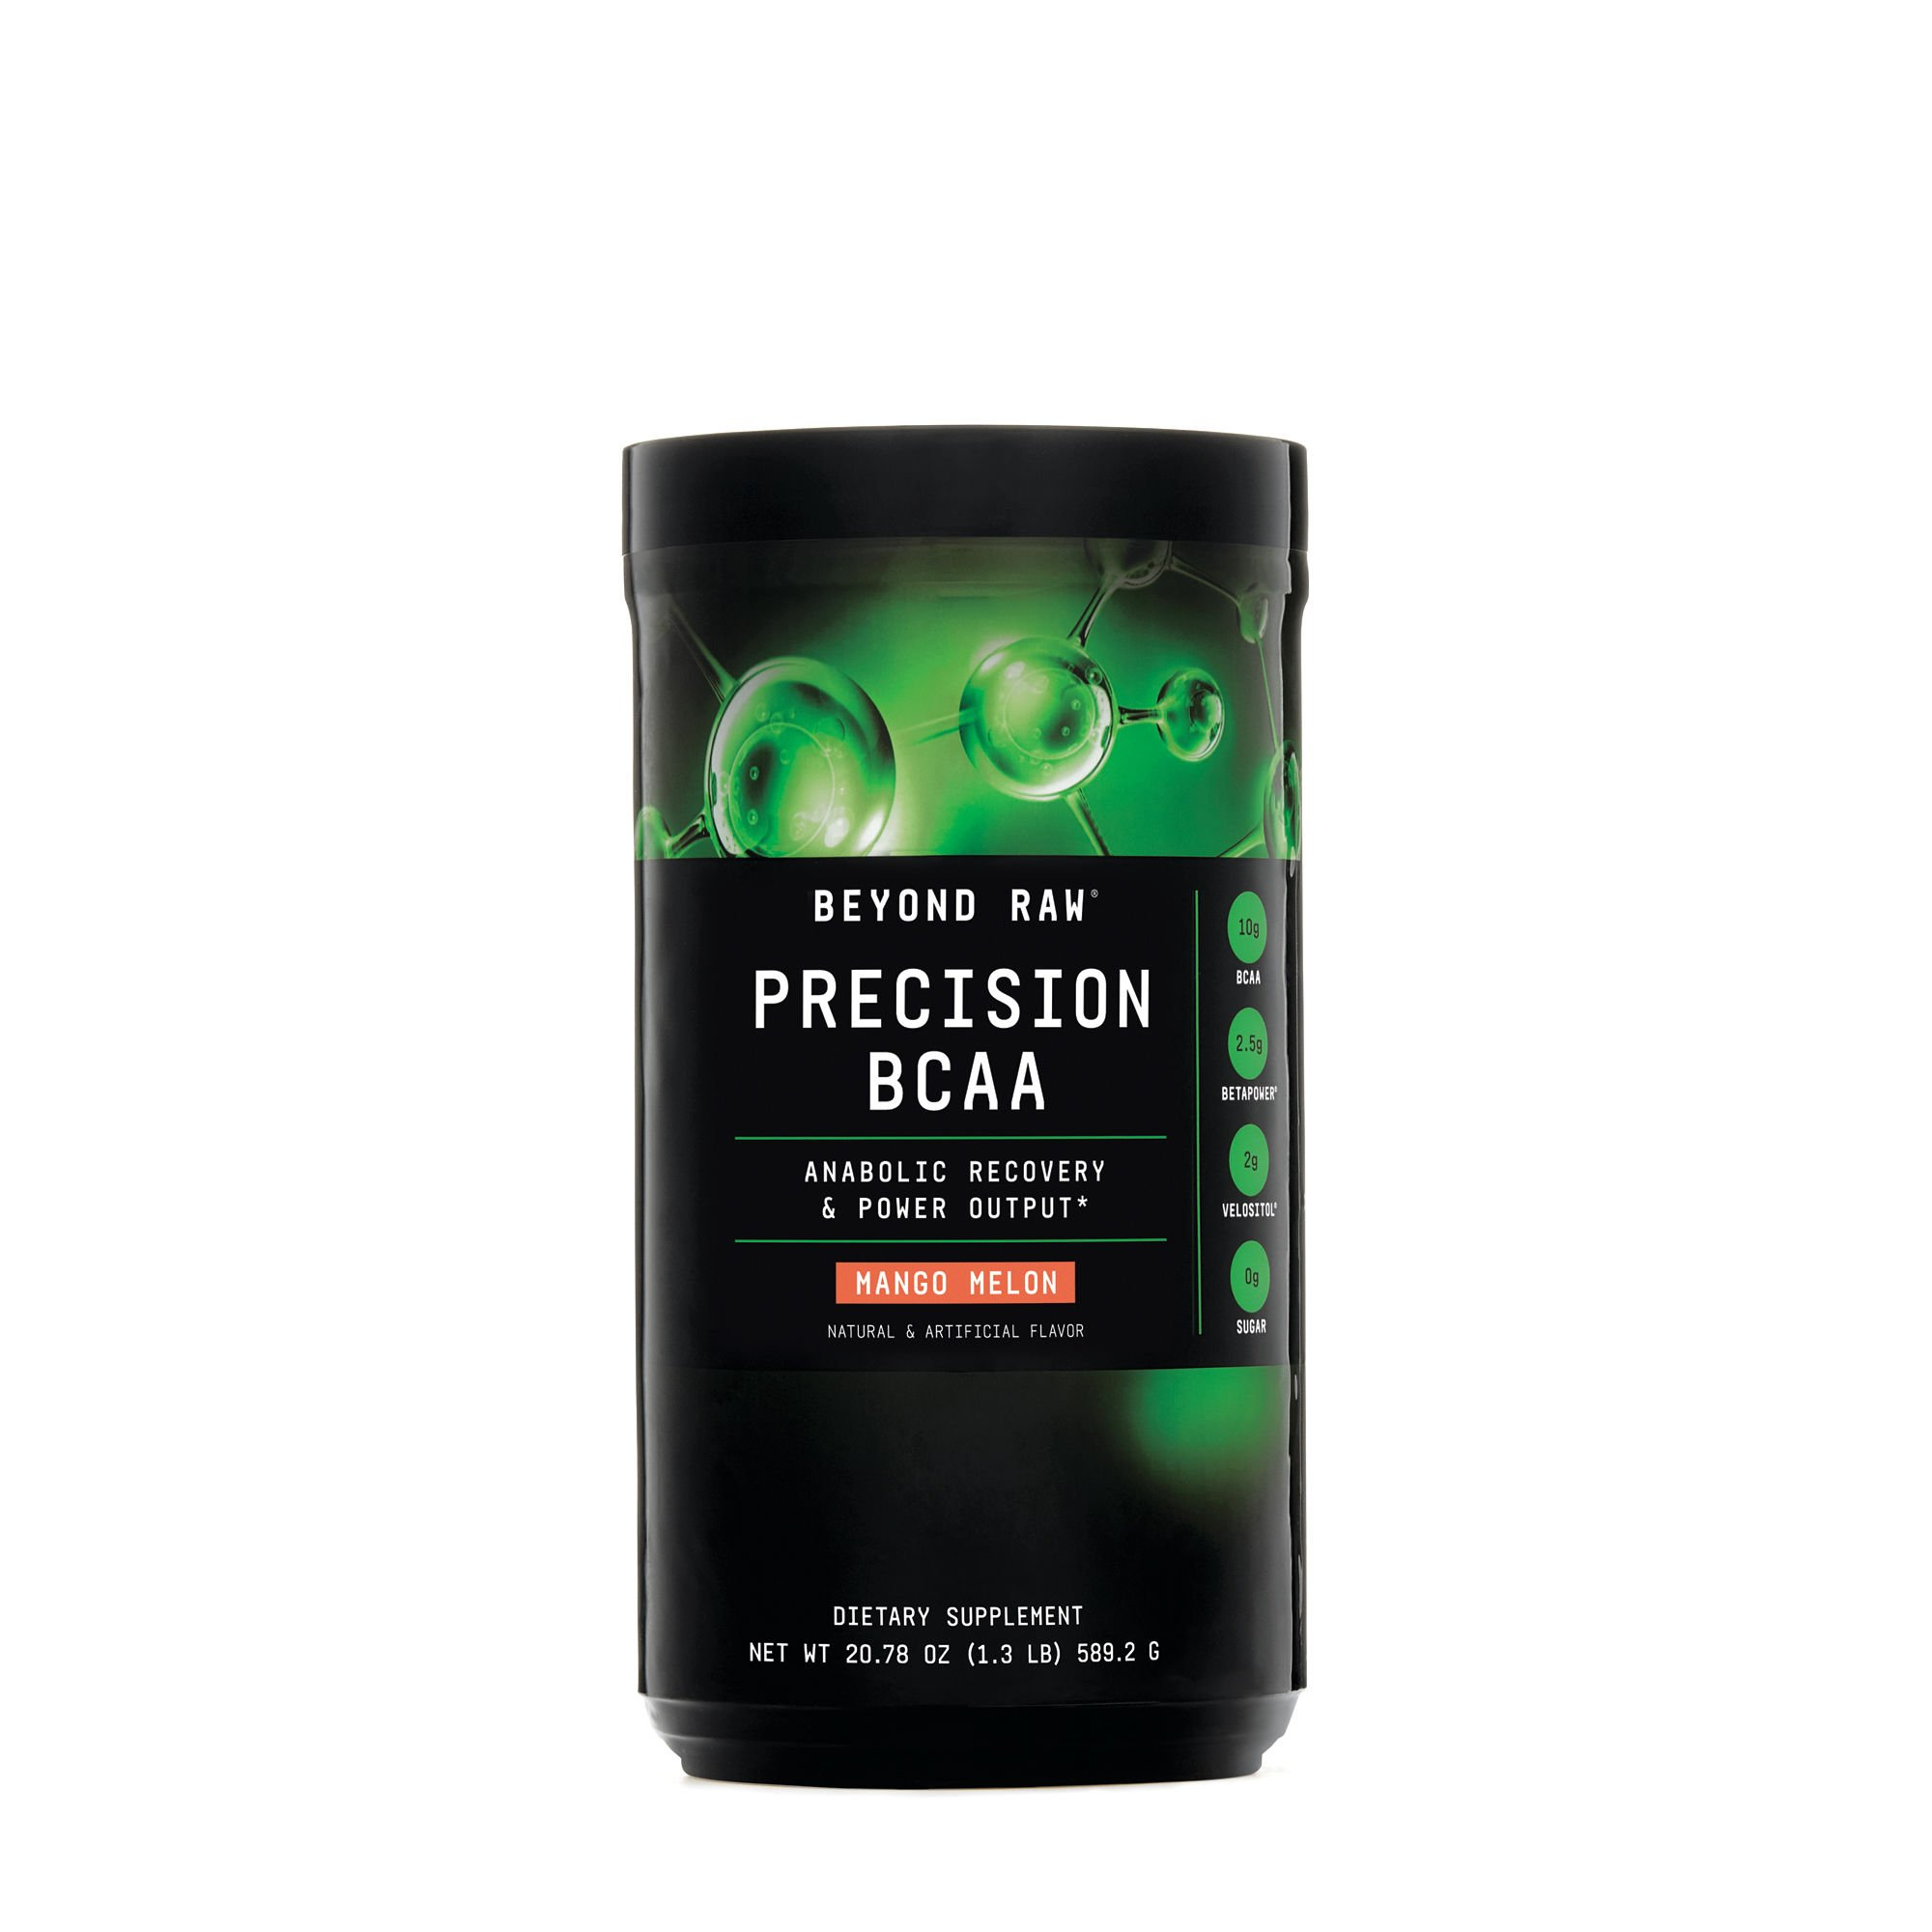 Beyond Raw Precision BCAA, Mango Melon, 30 Servings, Provides Energy and Supports Muscle Repair